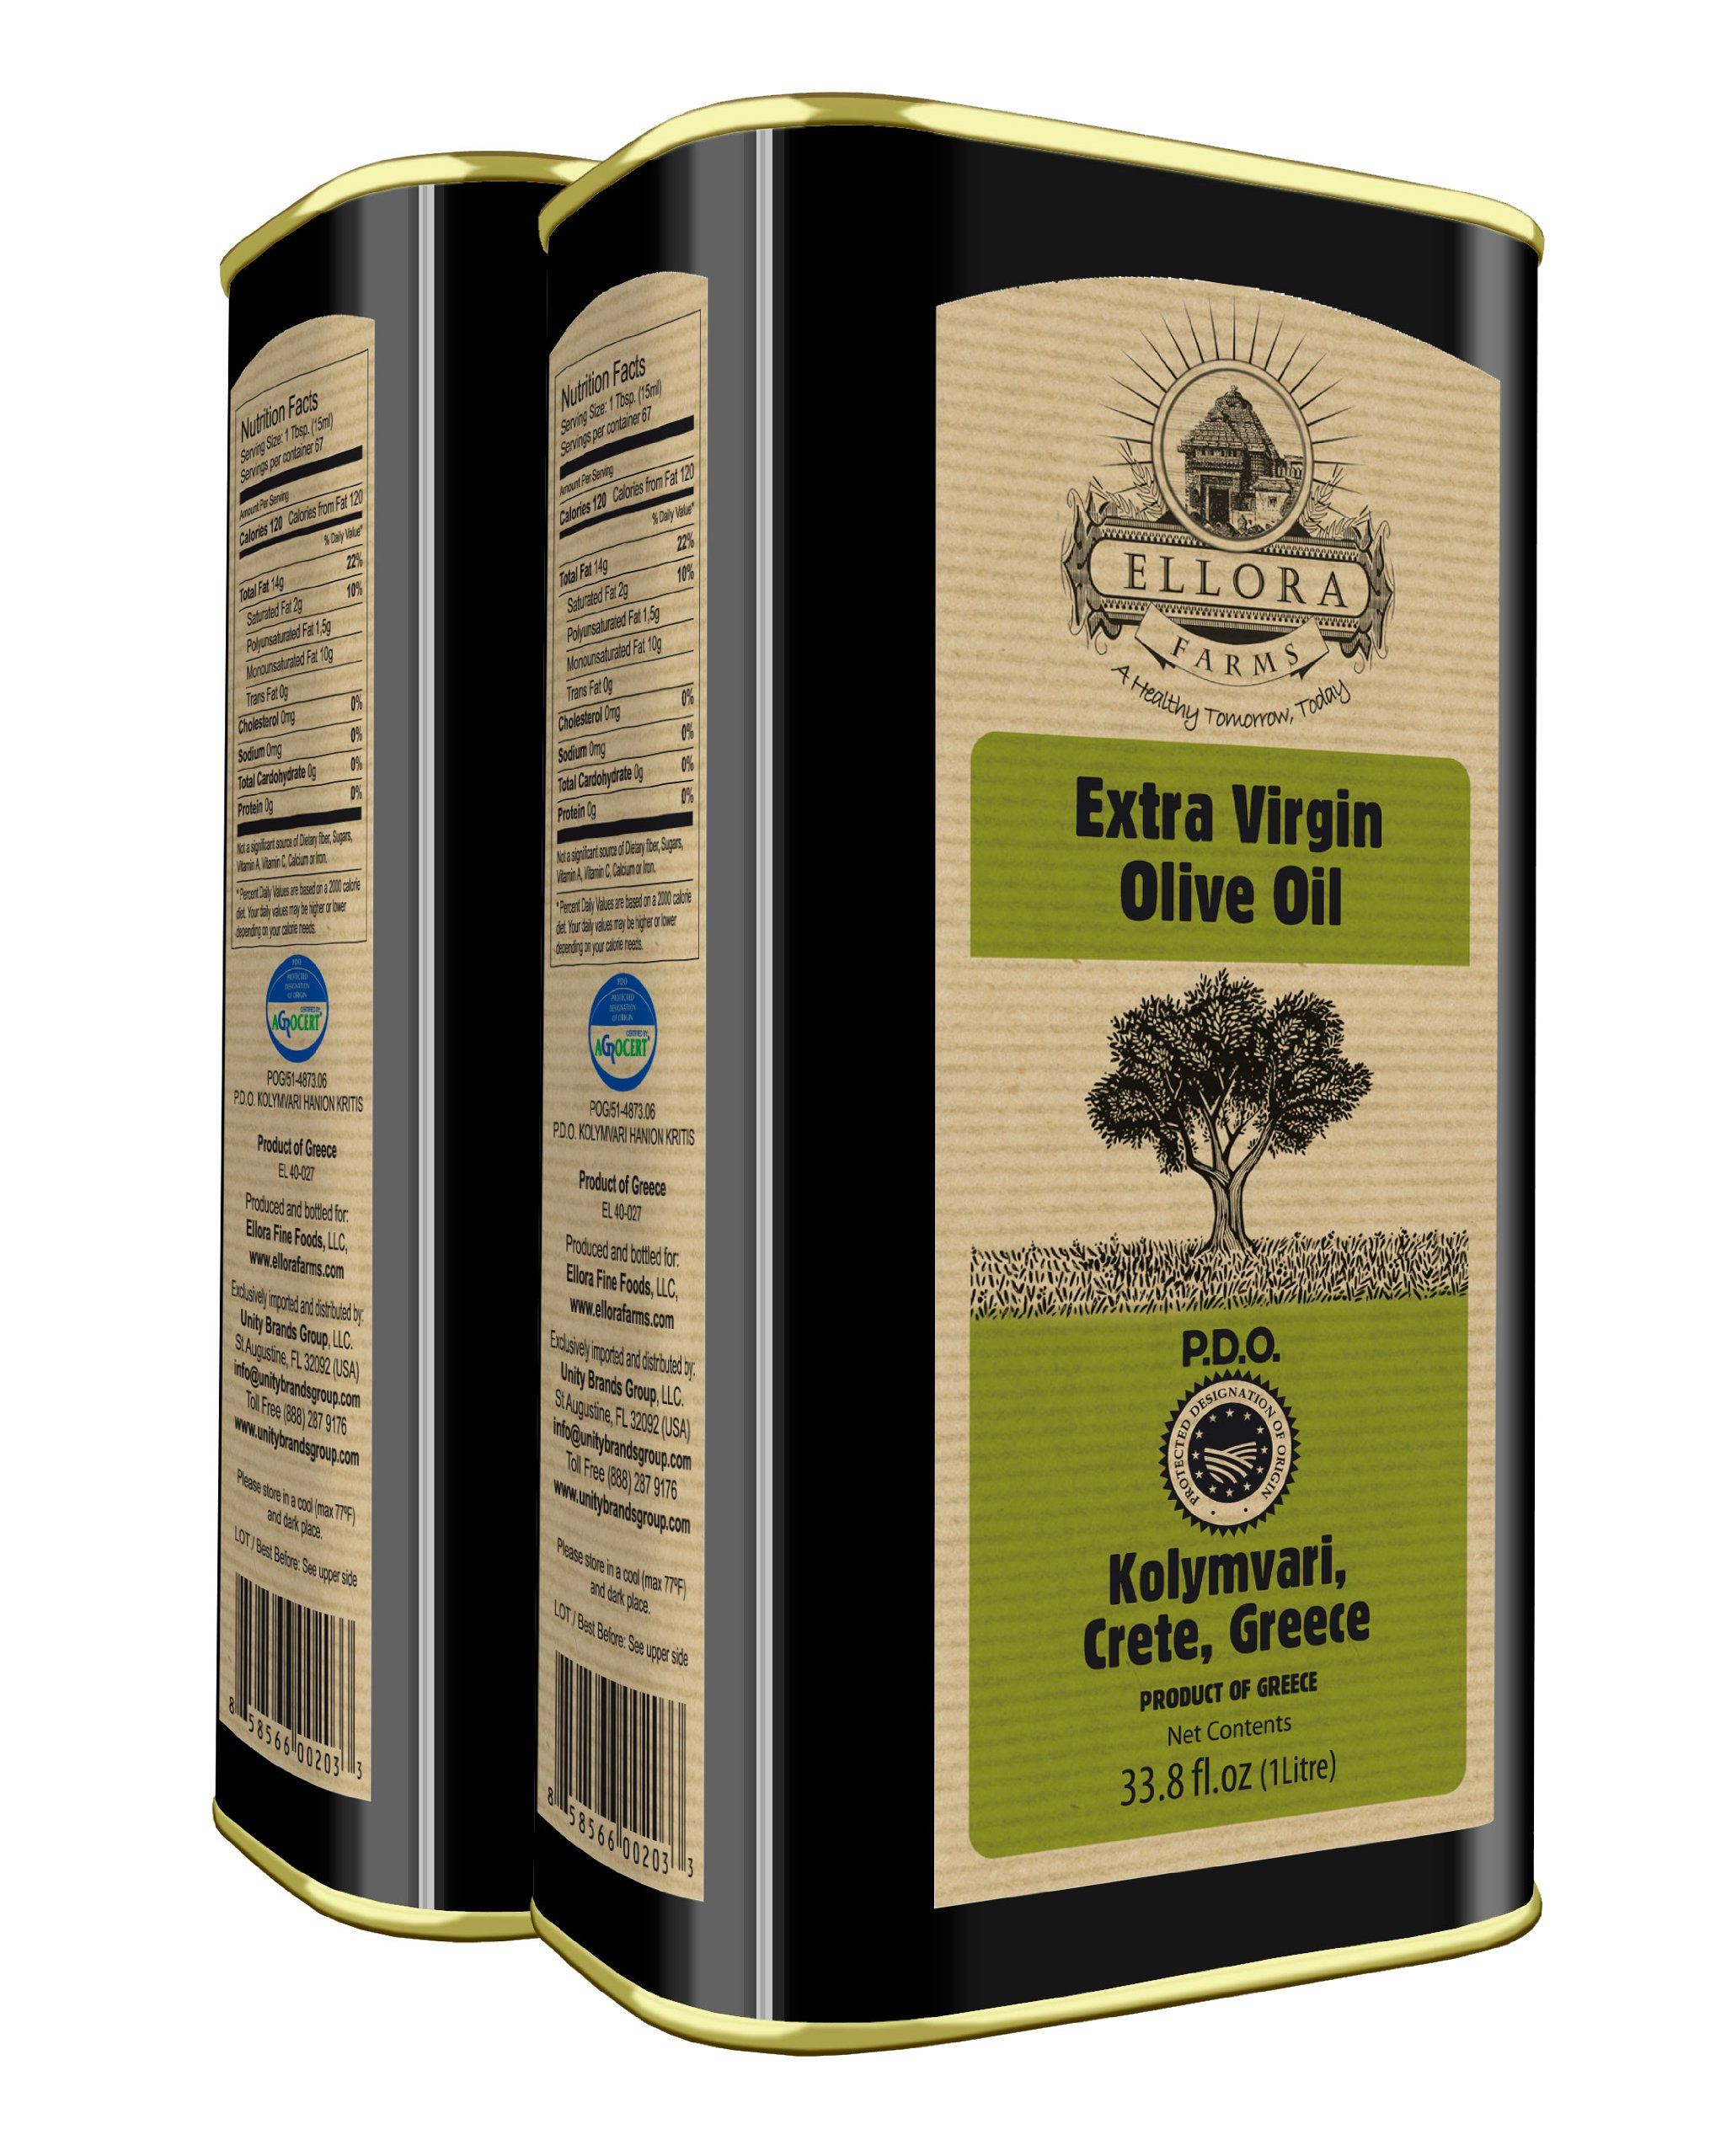 Ellora Farms | Certified PDO Extra Virgin Olive Oil | Koroneiki Olives | First Cold Press & Traceable Olive Oil | Harvested in Ancient Crete, Greece | Kosher | 1 Lt Tins (33.8 FL oz.) | Pack of 2